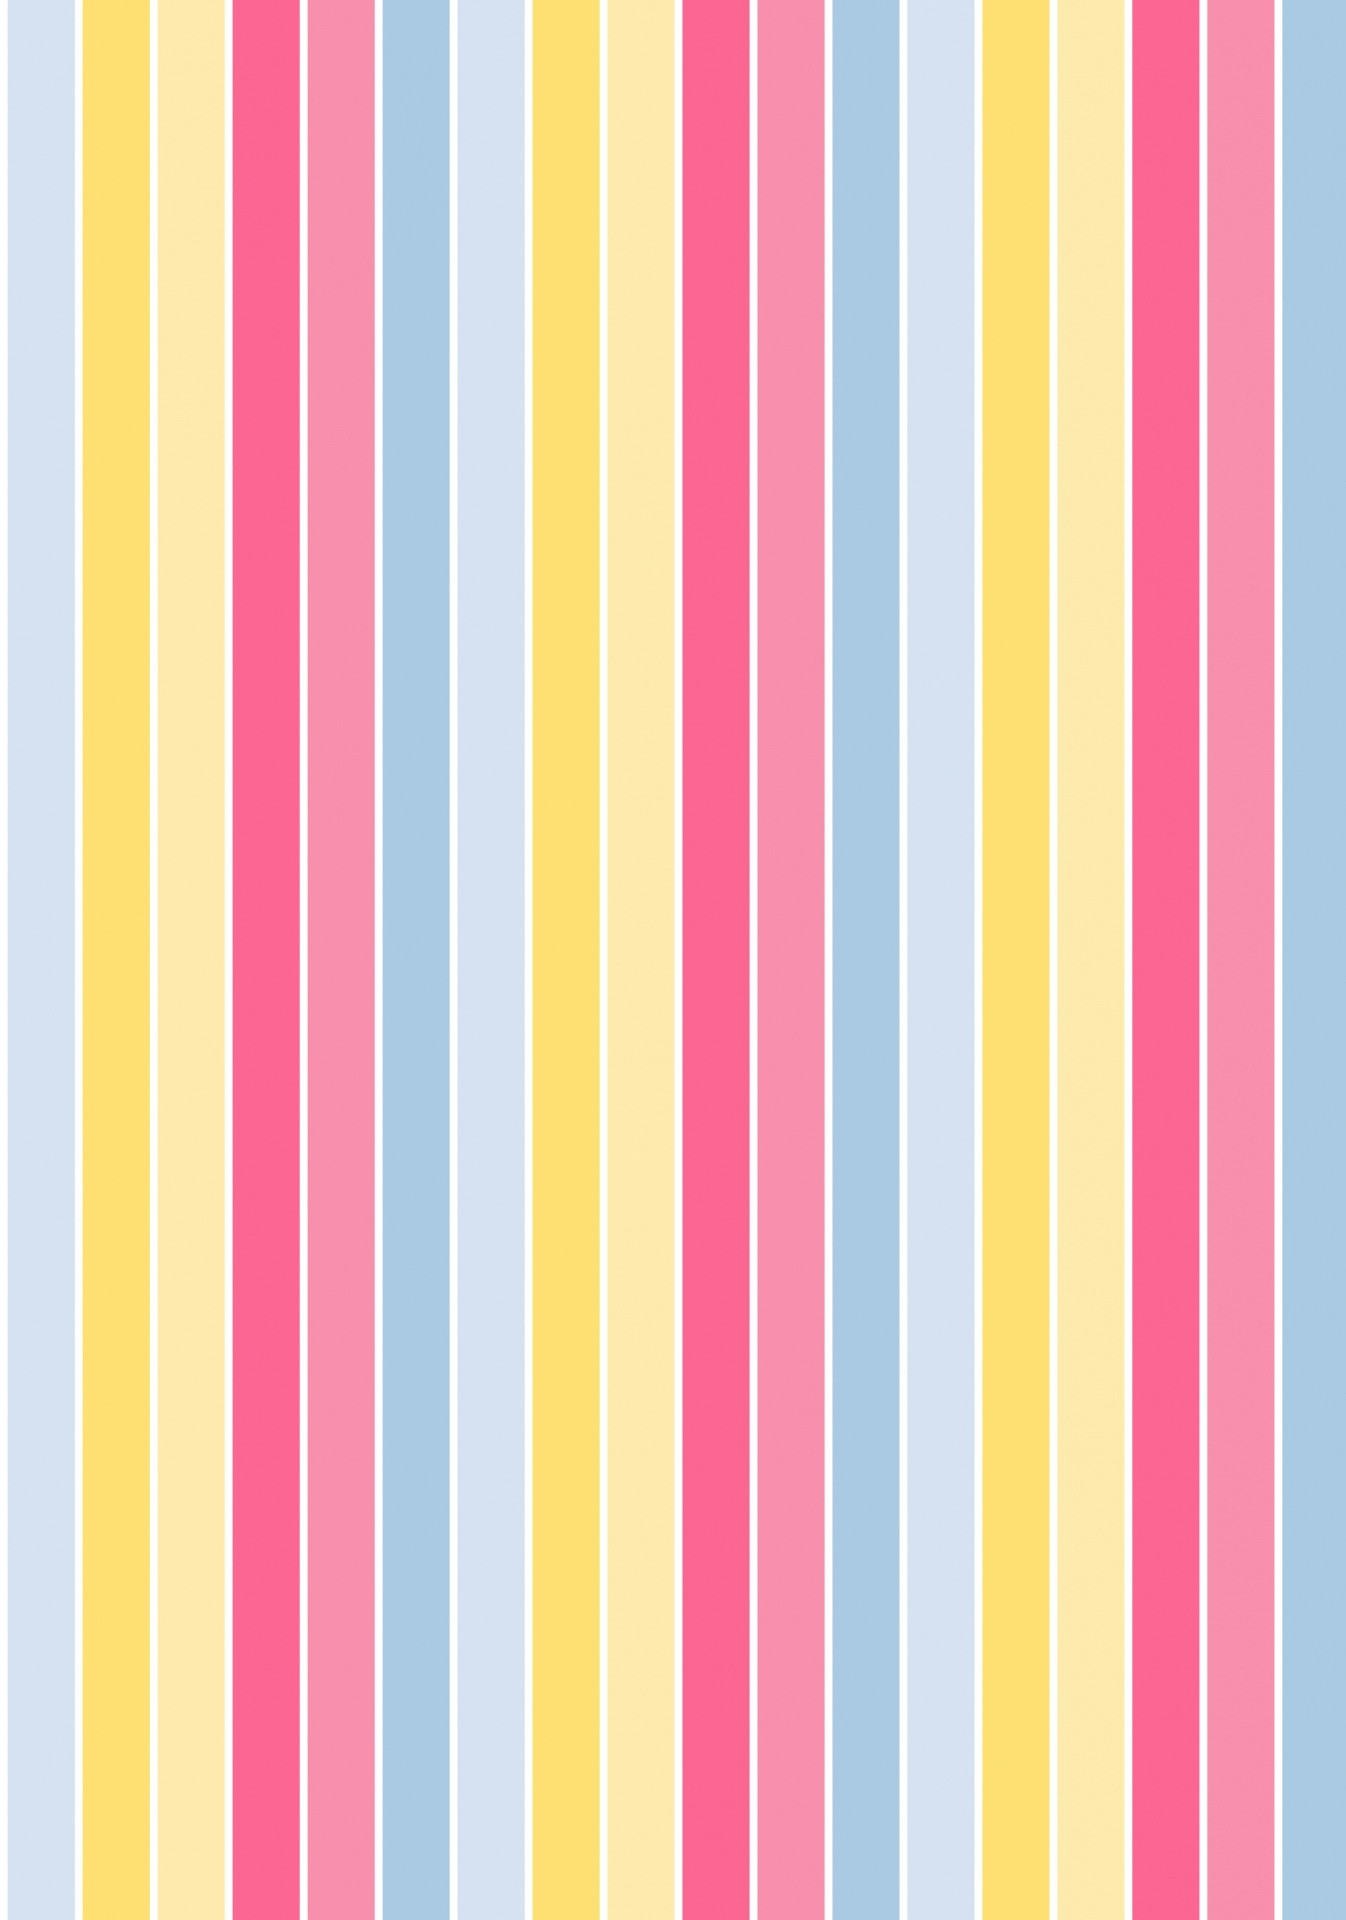 Solid Color Wallpaper Iphone 5 Pastel Colors Background 48 Pictures